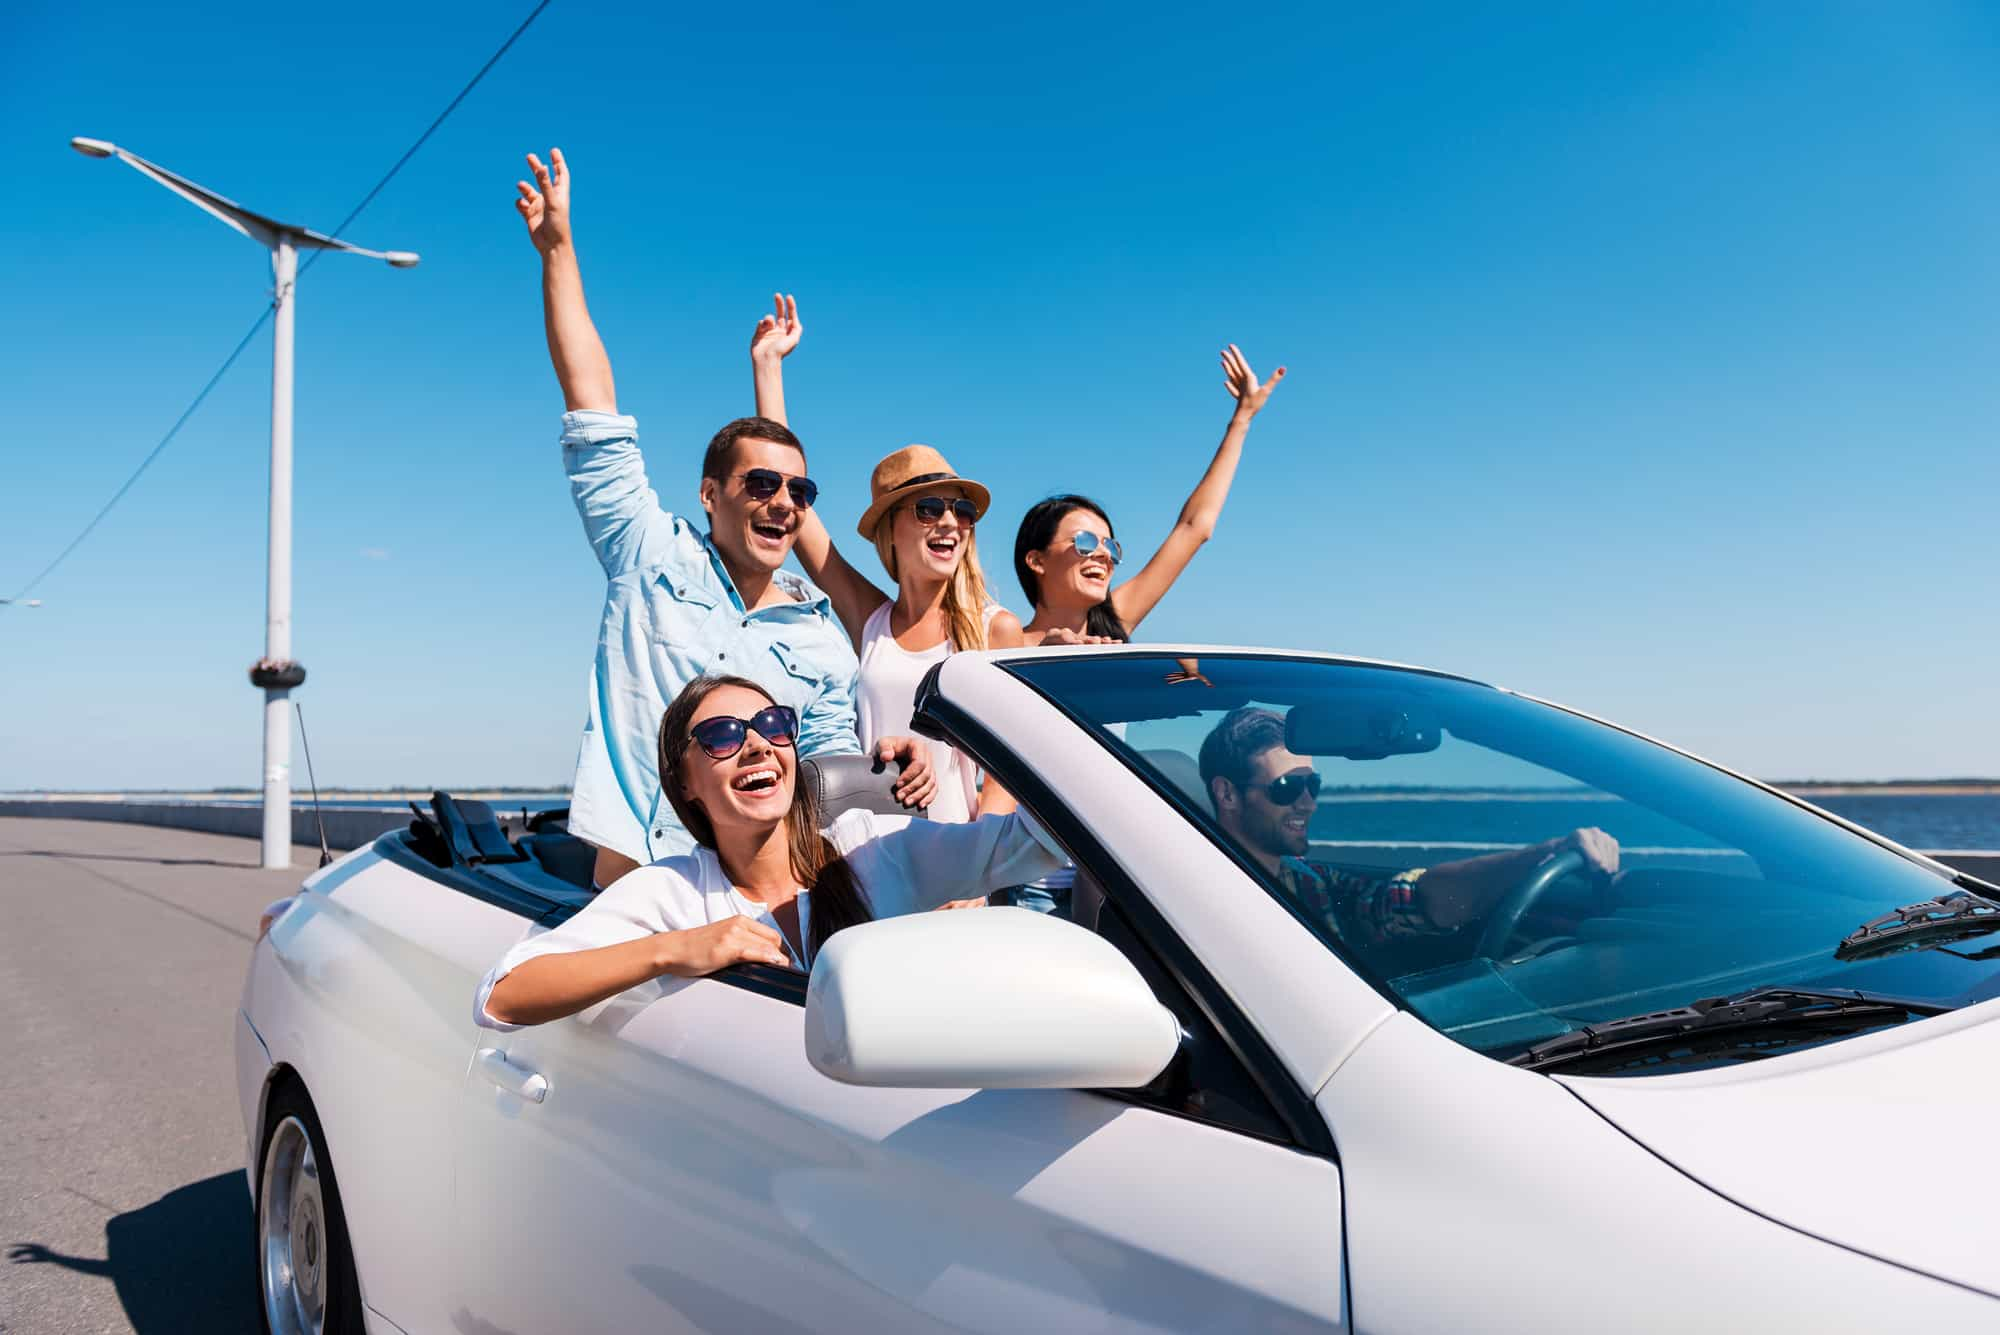 Four people in a convertible car enjoying a road trip